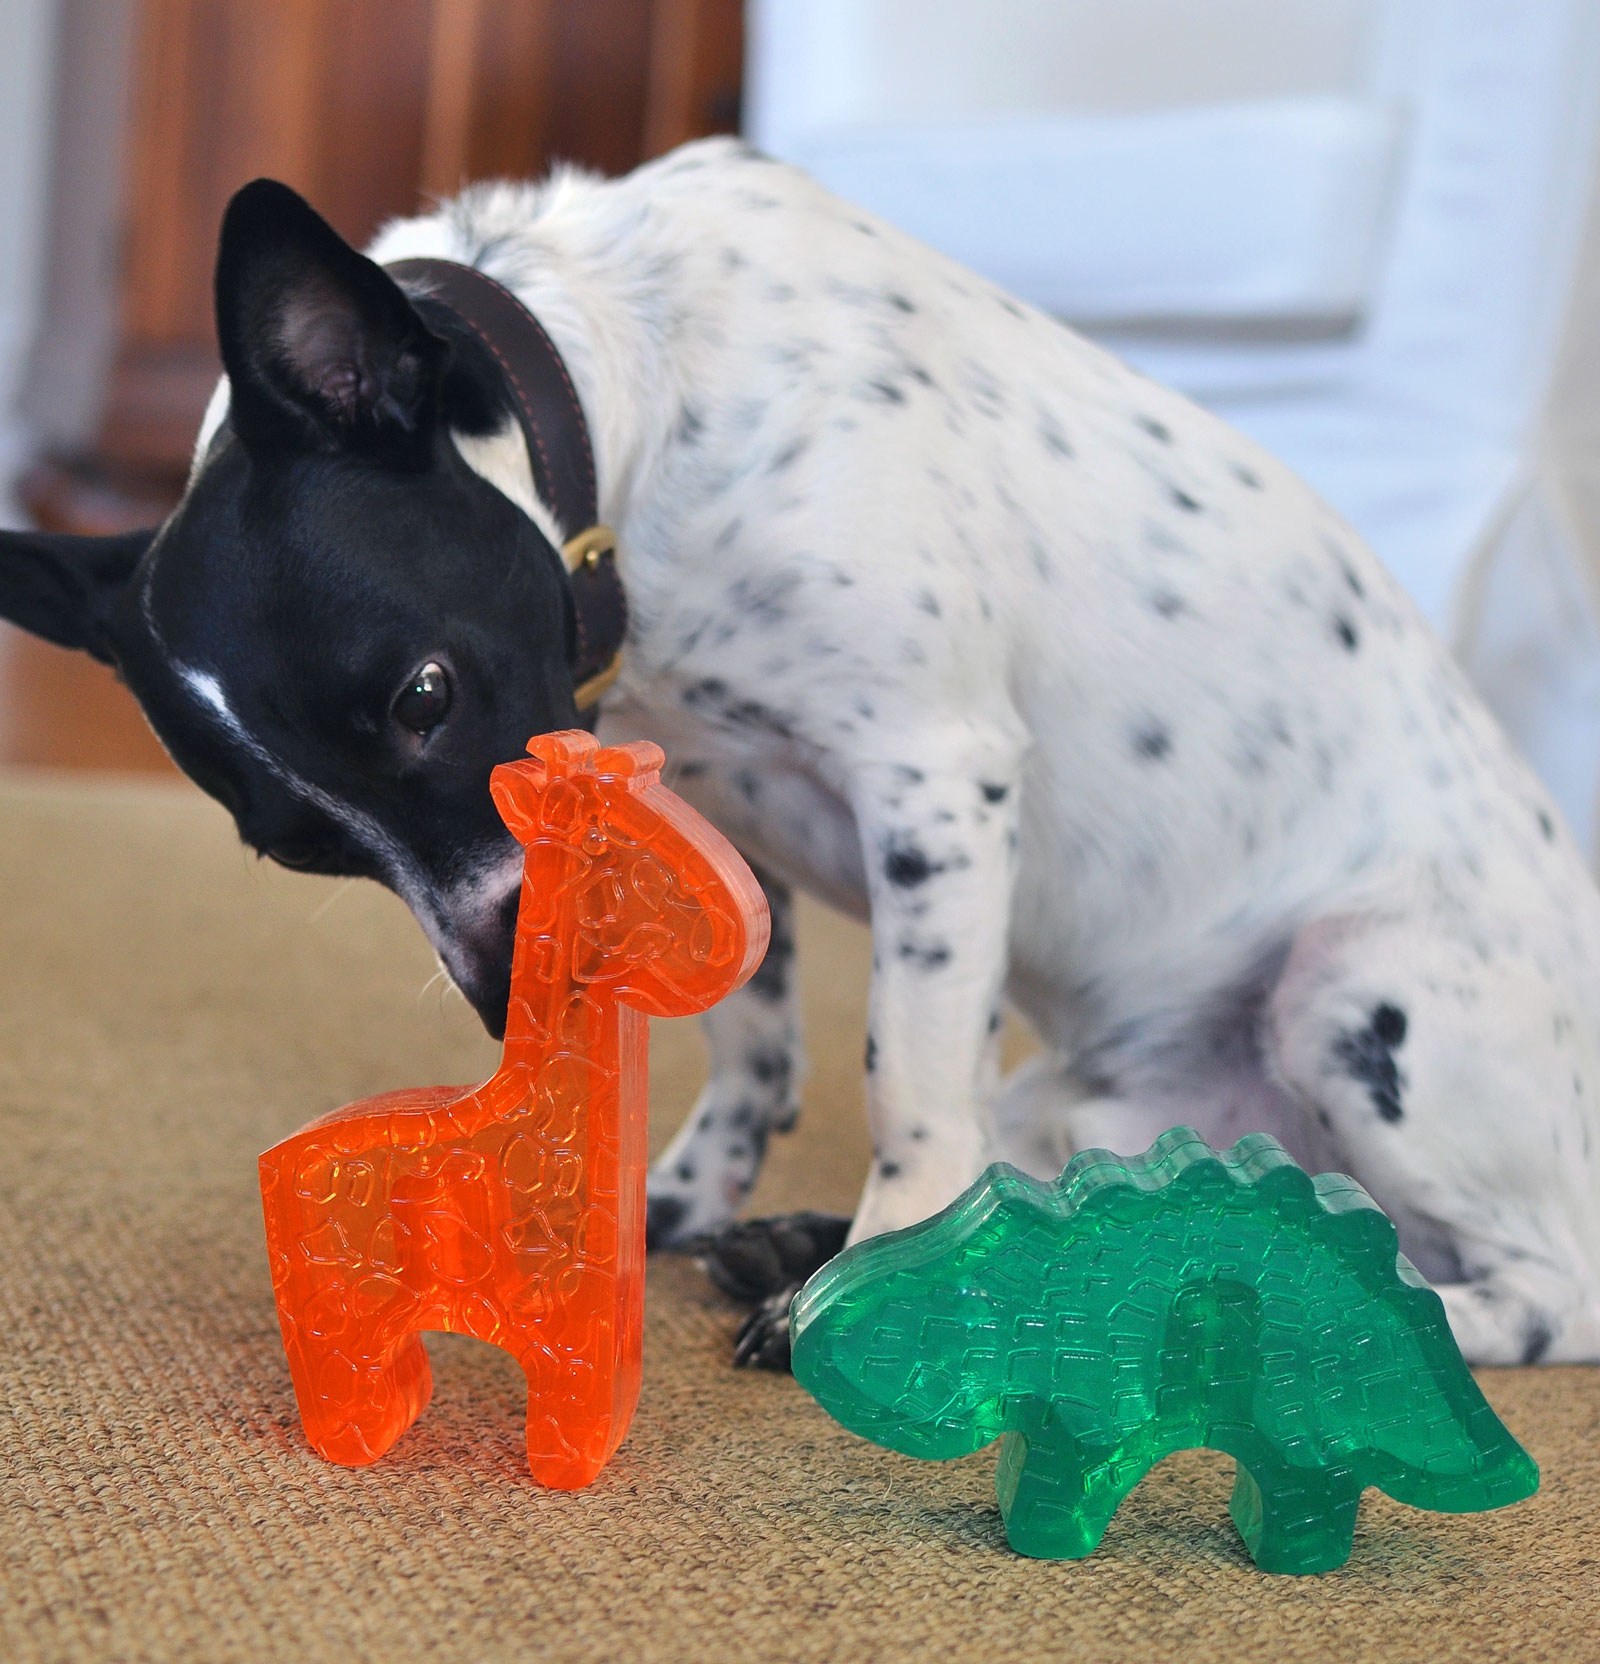 The new Kong Squeezz Zoo line is an adorable and colorful addition to Kong's line of incredible toys!